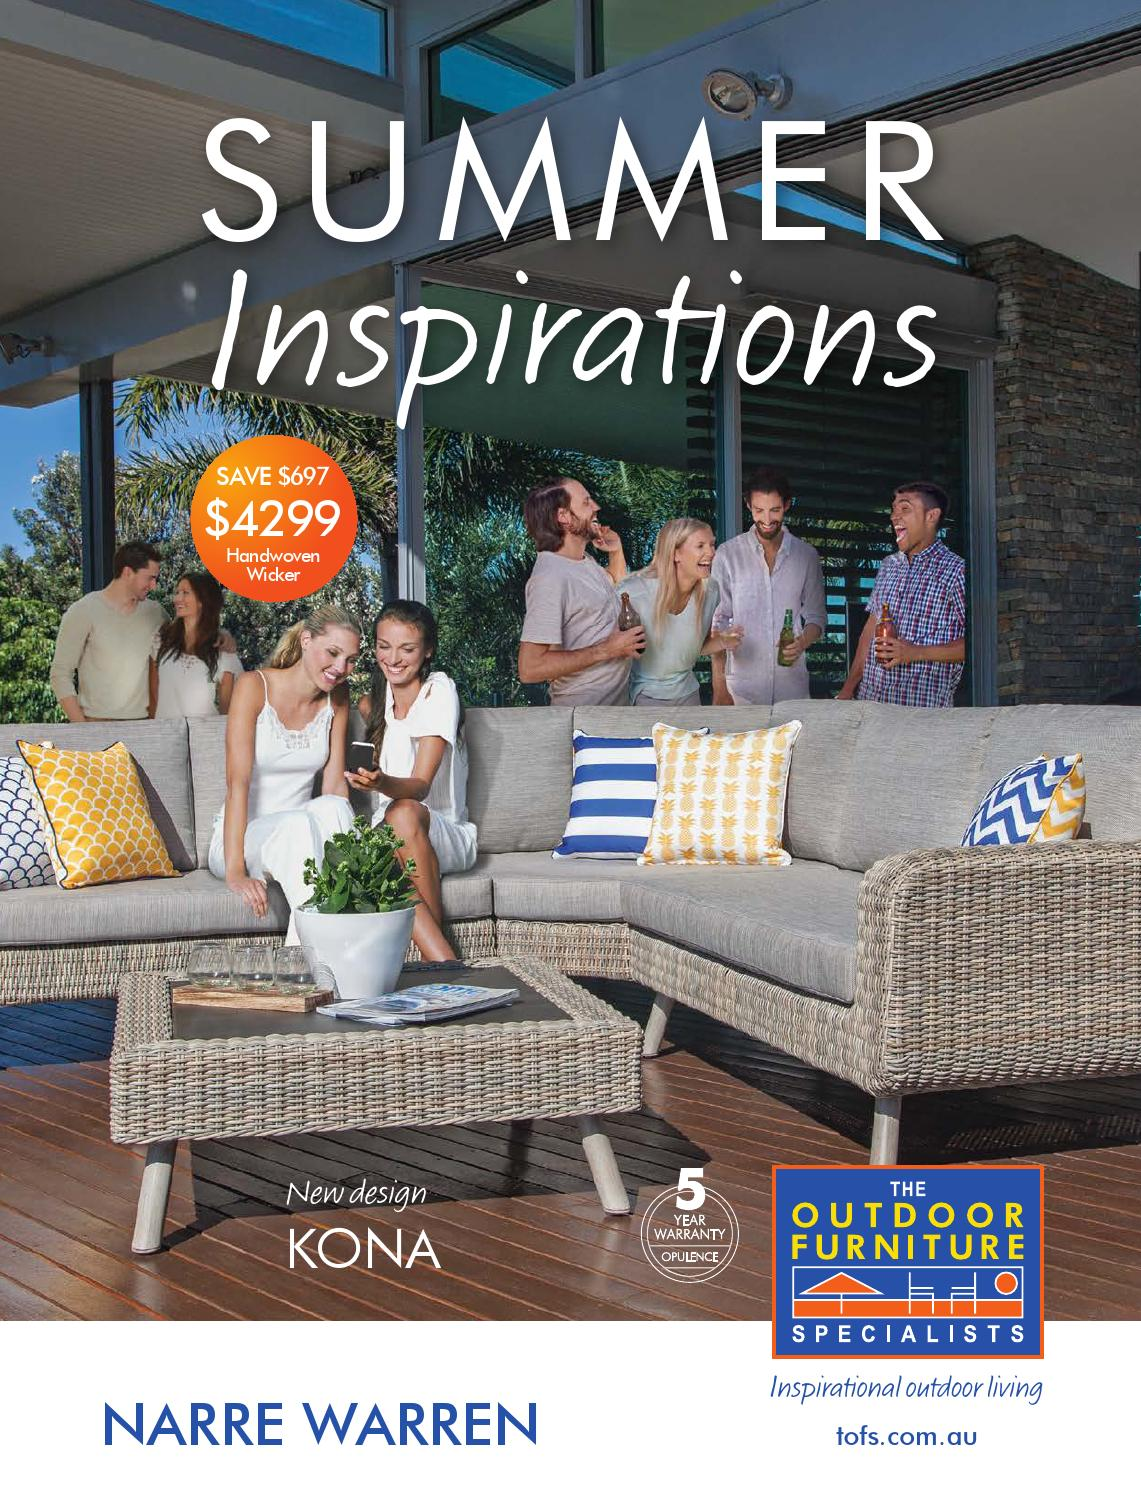 Exceptional The Outdoor Furniture Specialists   Narre Warren. Summer Inspirations  Catalogue By TOFS: The Outdoor Furniture Specialists   Issuu Part 6